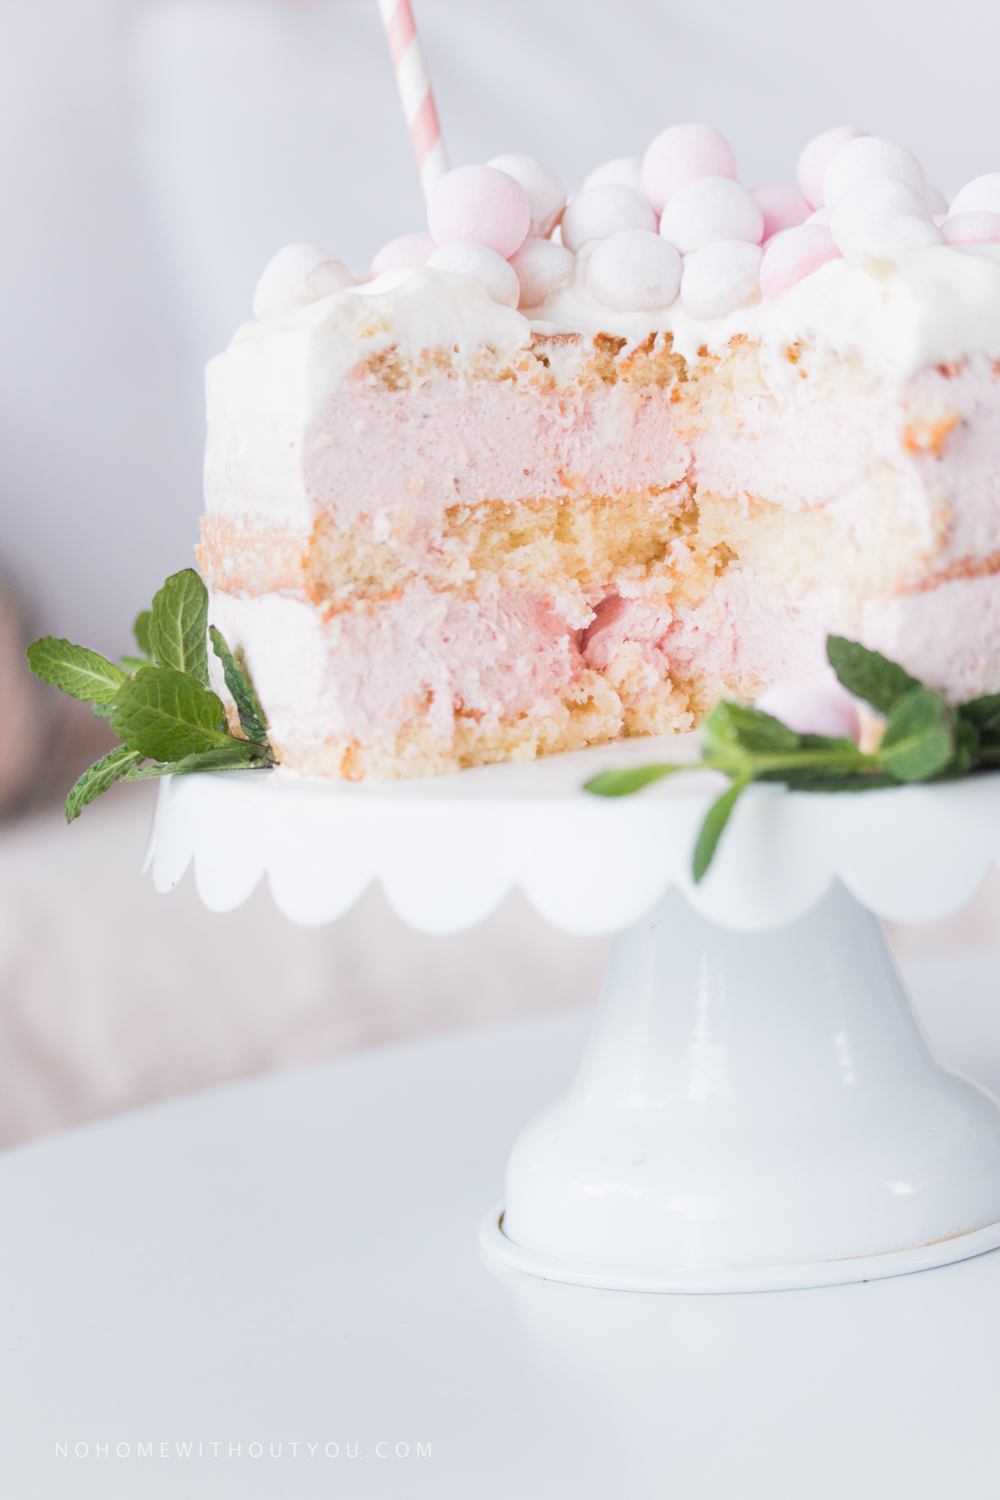 Strawberry Naked Cake - No home without you (10 of 13)